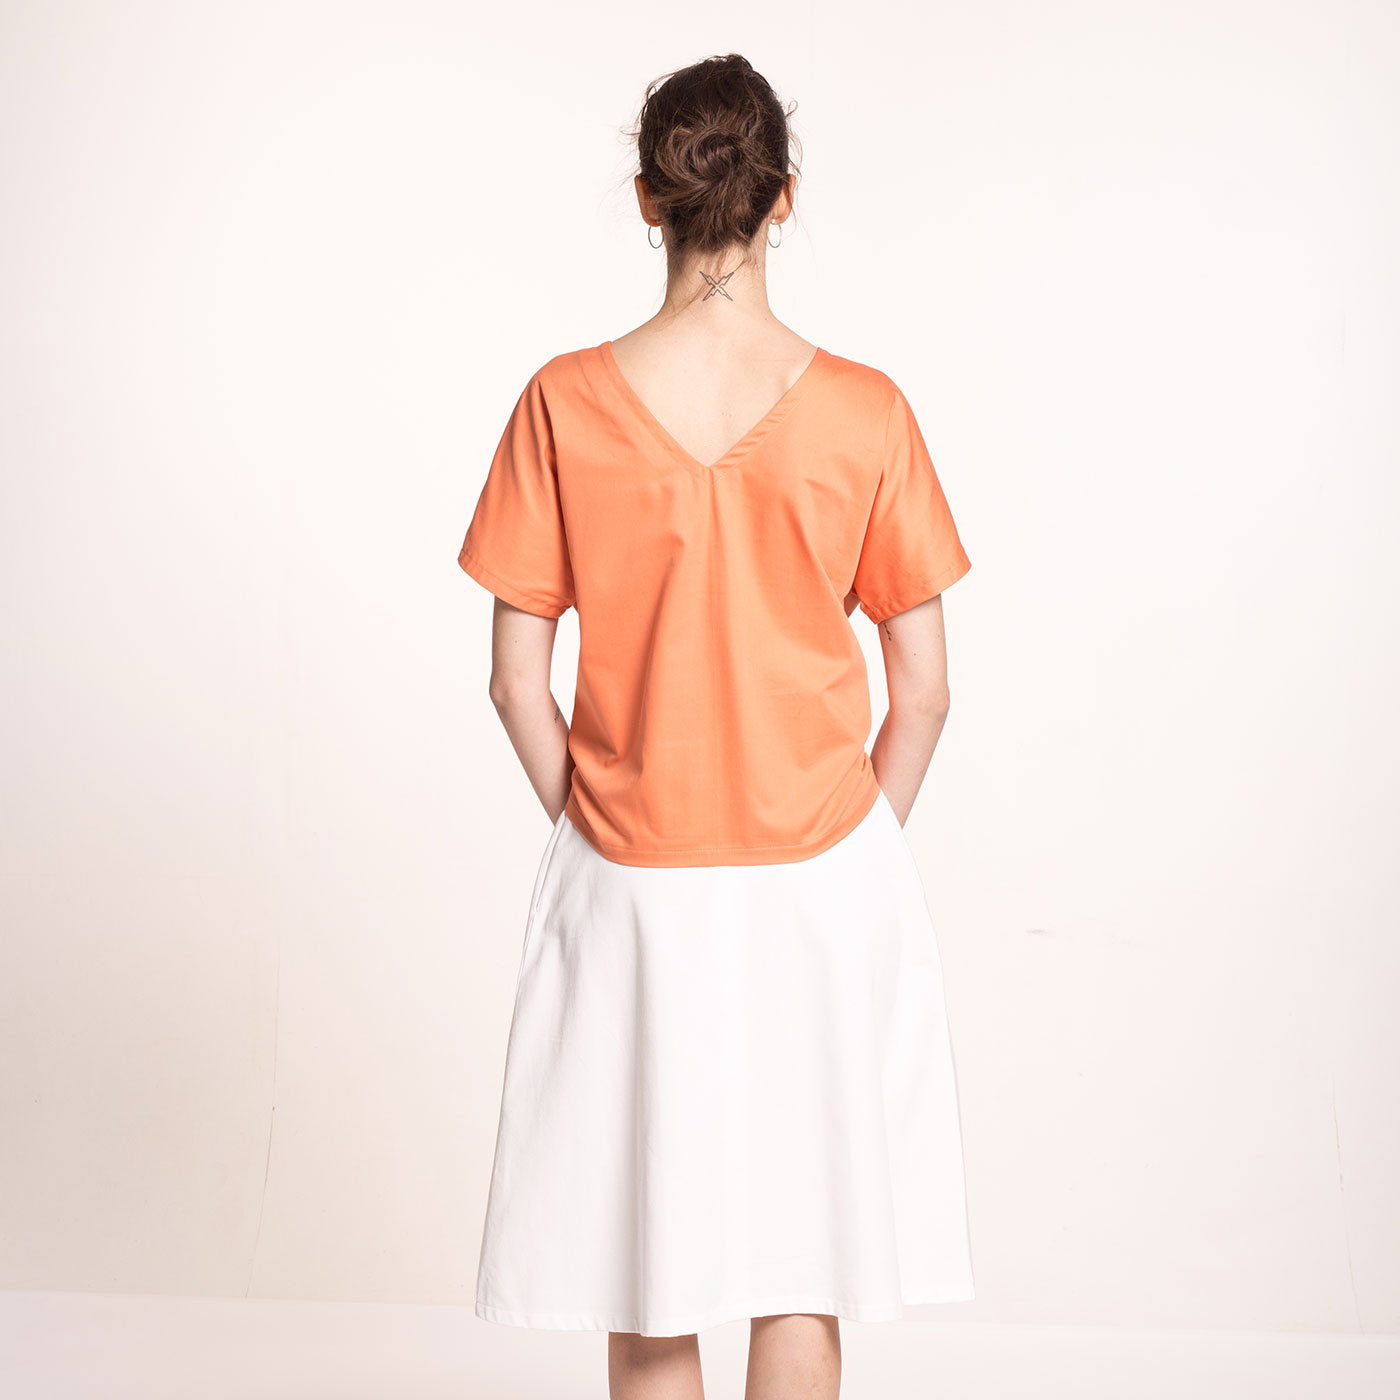 e model wears an orange, front tie, sustainable, organic cotton sateen top, with short sleeves V-neck at the back, back view.